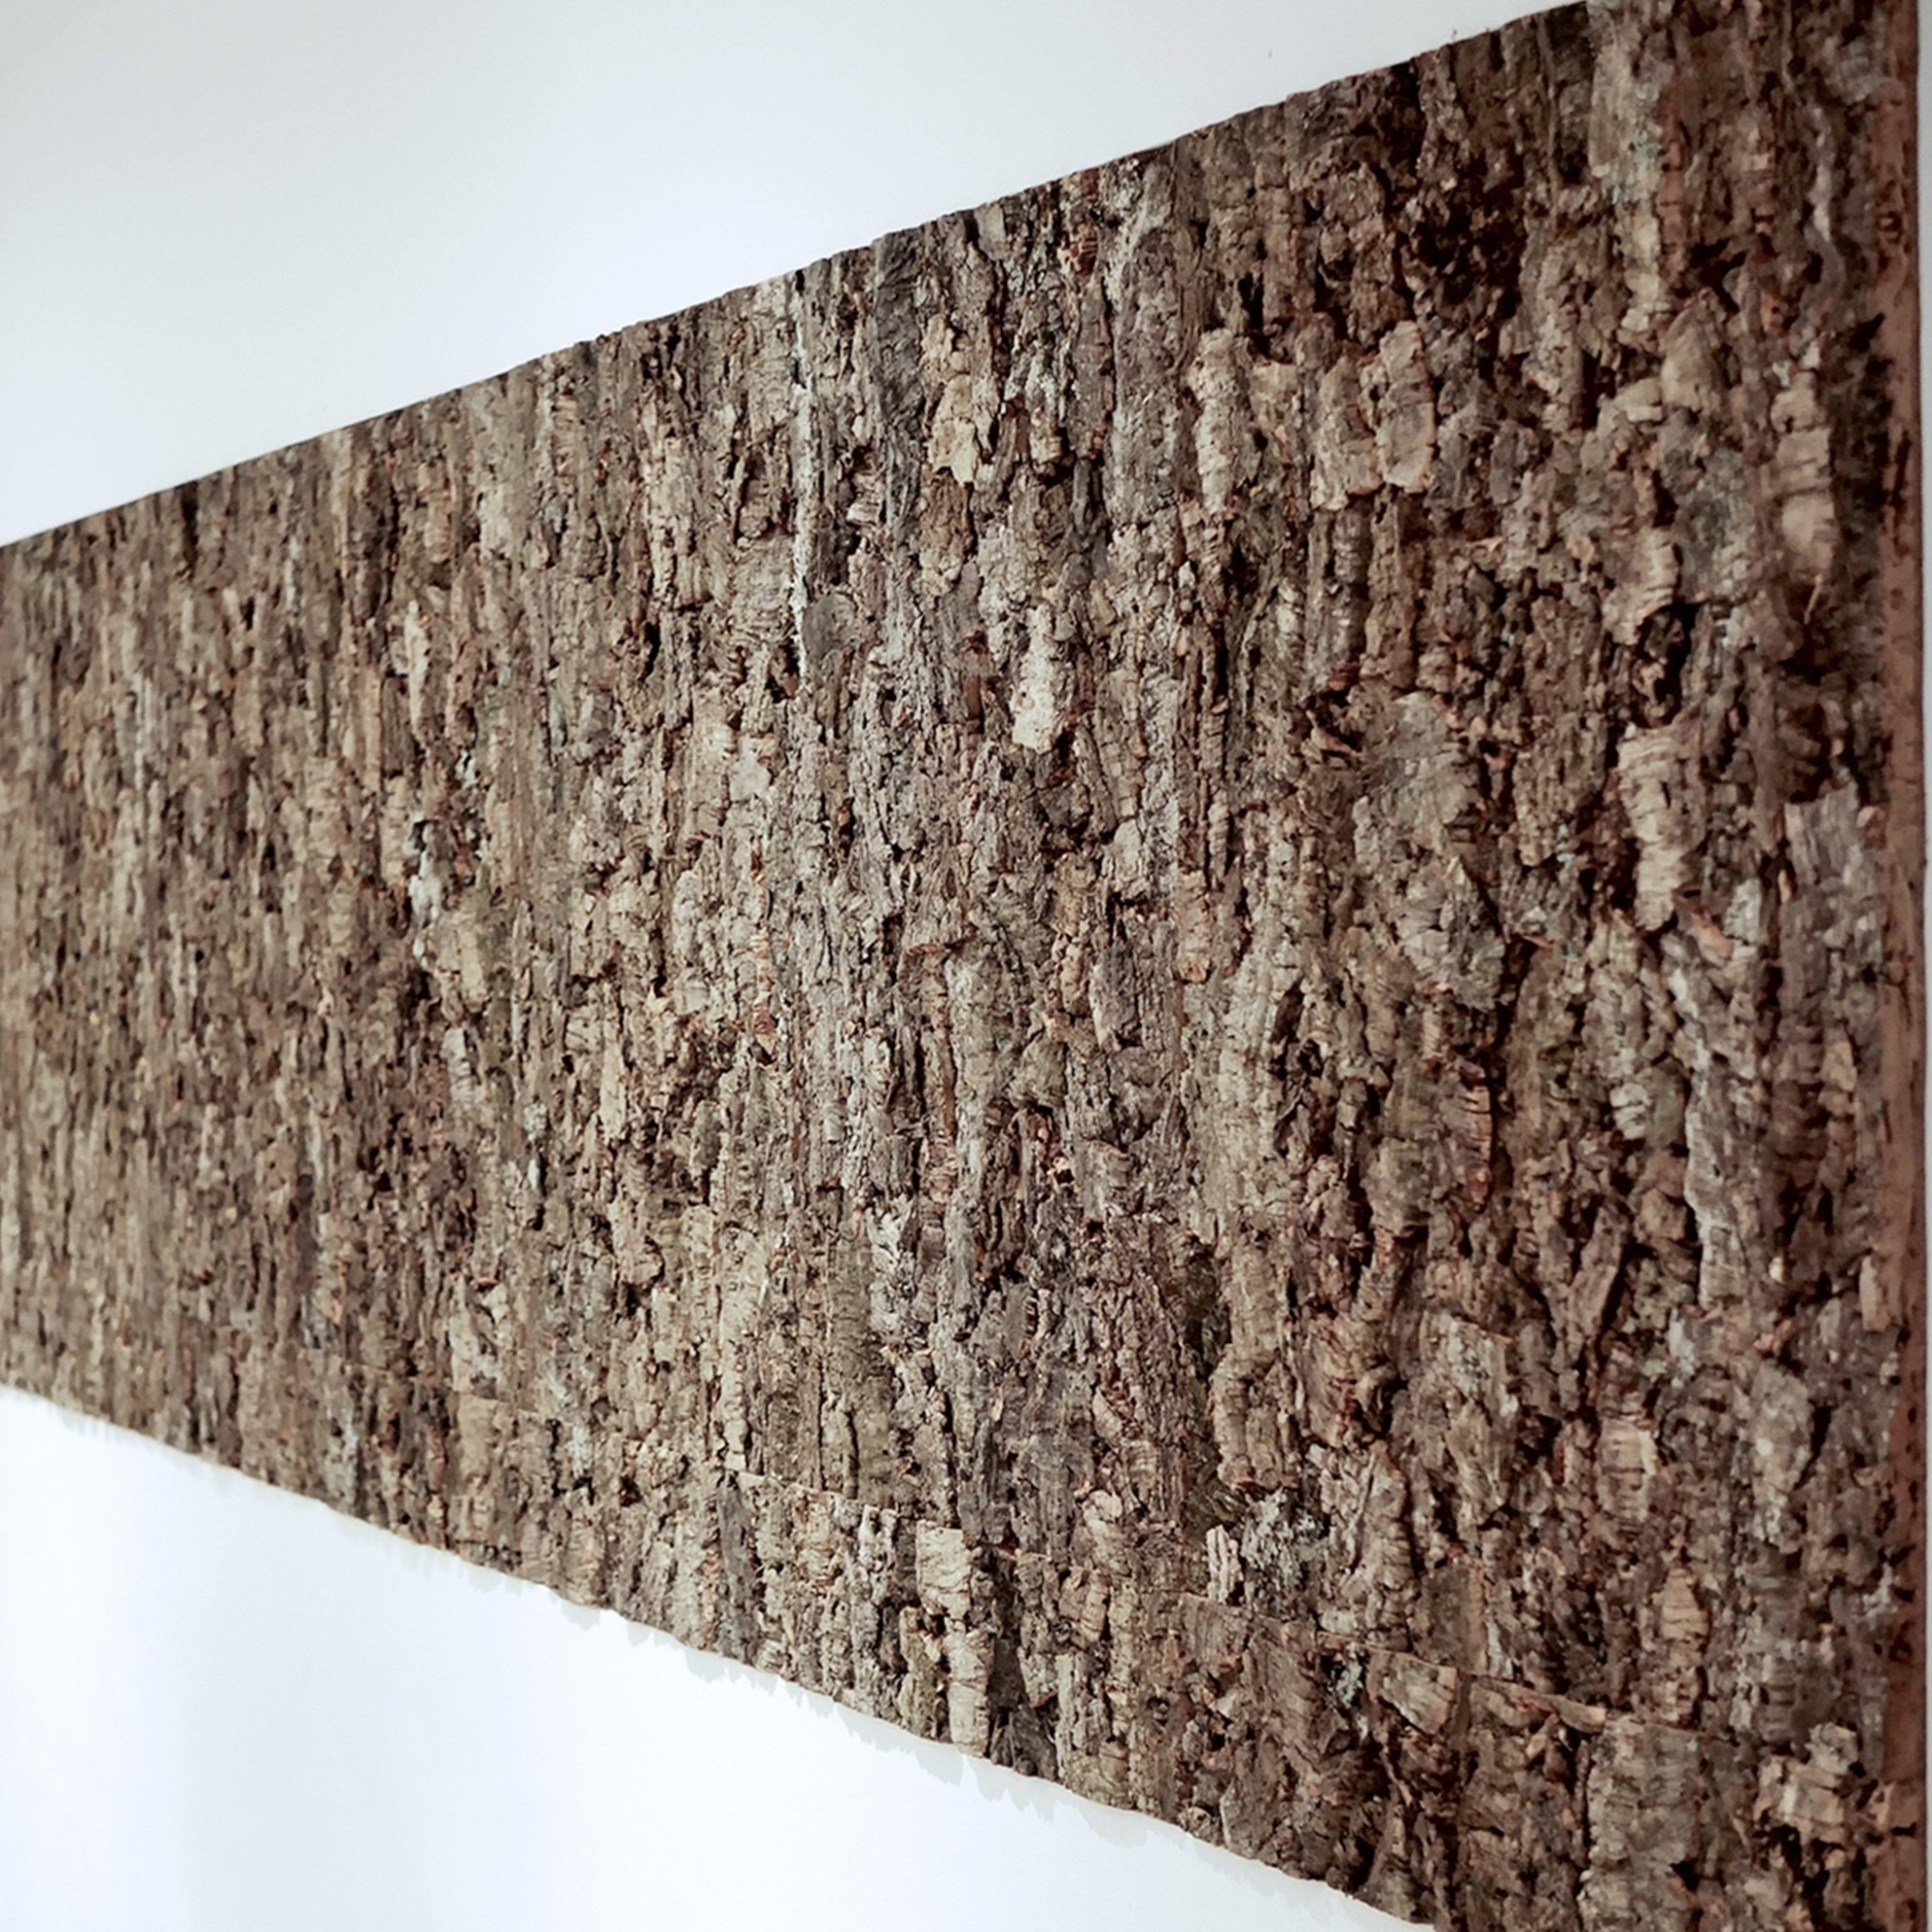 Cork Bark Decorative Cork Wall Tiles Cork Bark Sheets